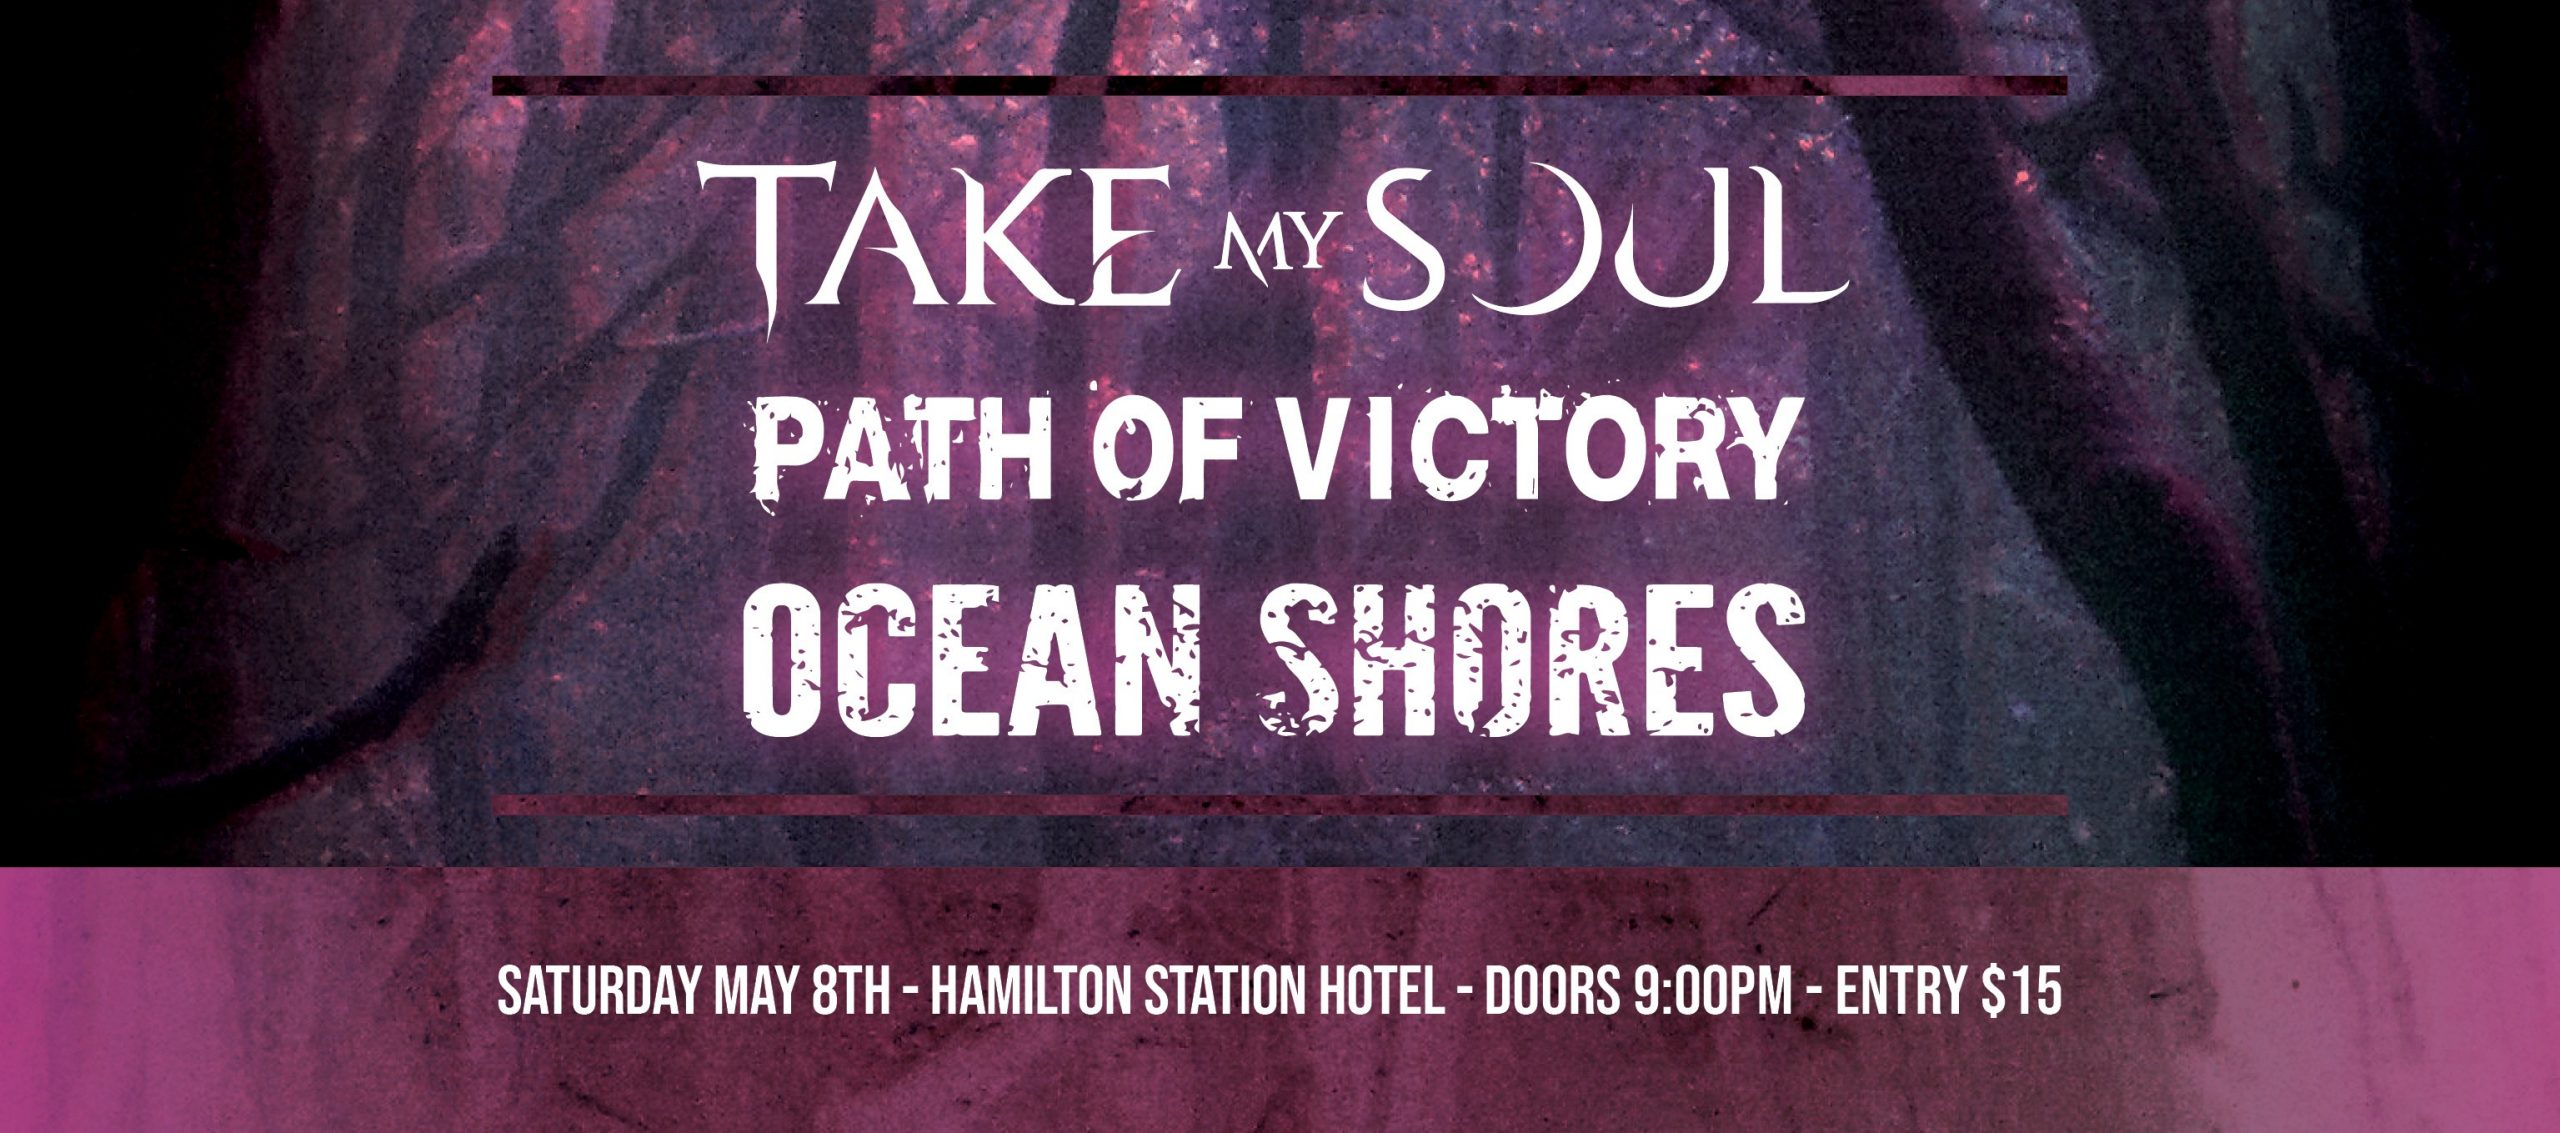 Take My Soul, Path Of Victory, Ocean Shores